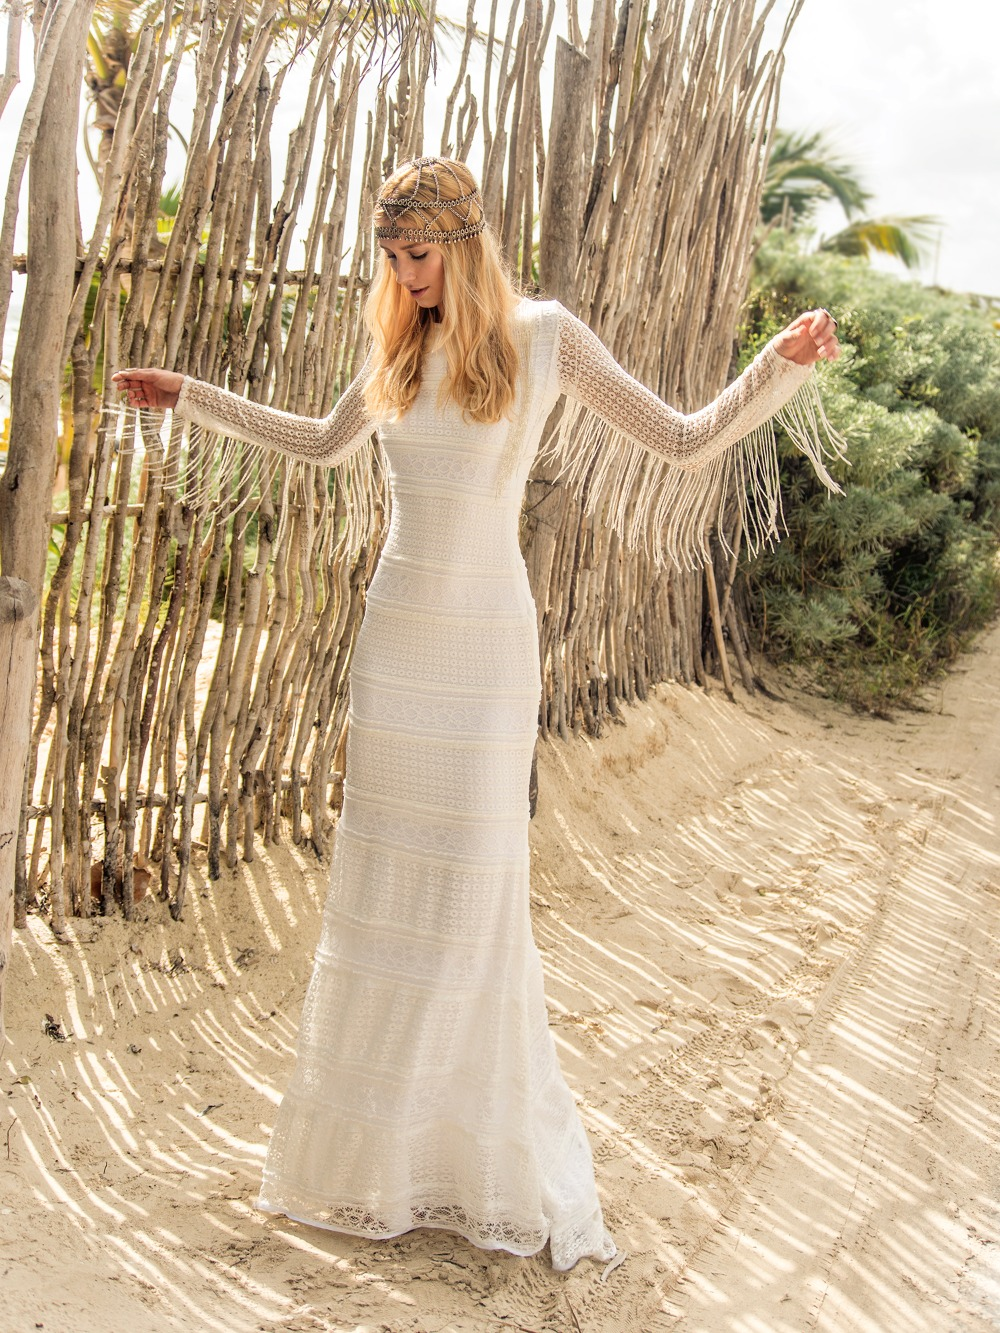 Trending - Boho Bridal Gowns From Island Tribe